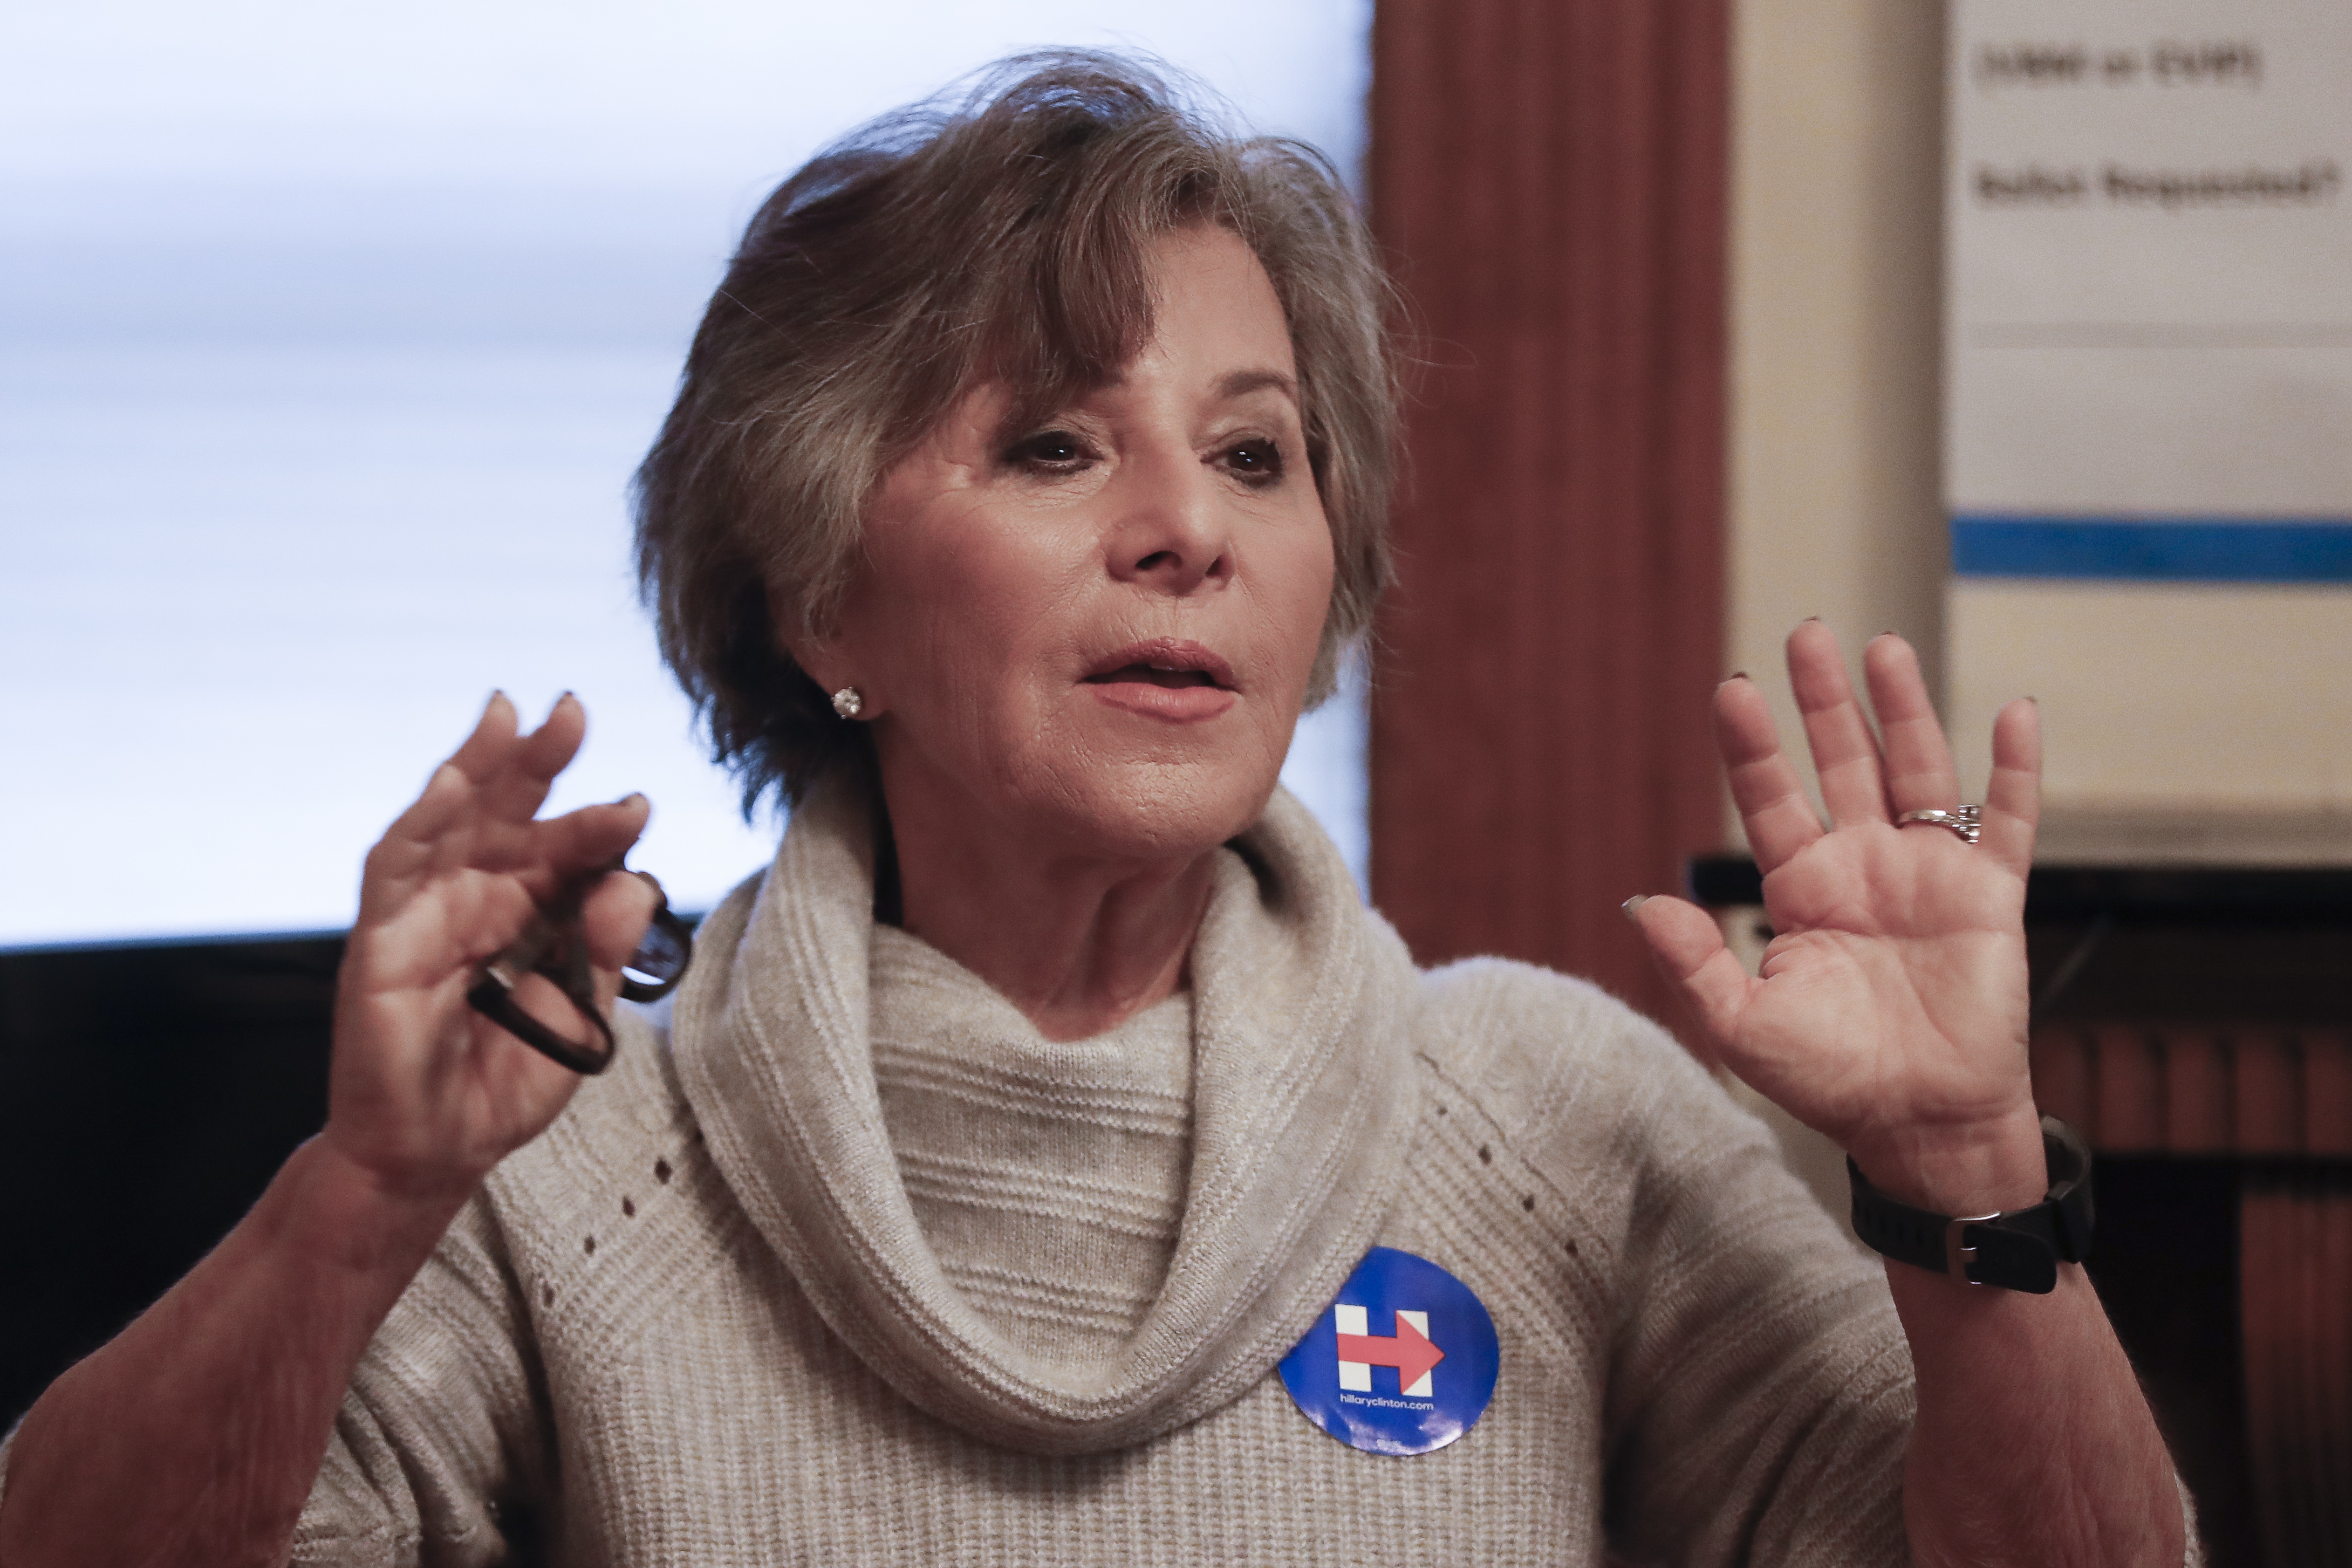 "FILE - In this Oct. 29, 2016, file photo, then-Sen. Barbara Boxer, D-Calif., speaks to volunteers at a home serving as a canvassing site to train and organize supporters of Democratic presidential candidate Hillary Clinton in Cincinnati. One current and three former female members of Congress tell The Associated Press they have been sexually harassed or subjected to hostile sexual comments by their male colleagues while serving in the House. ""This is about power,"" said Boxer, after describing an incident at a hearing in the 1980s where a male colleague made a sexually suggestive comment. (AP Photo/John Minchillo, File)"